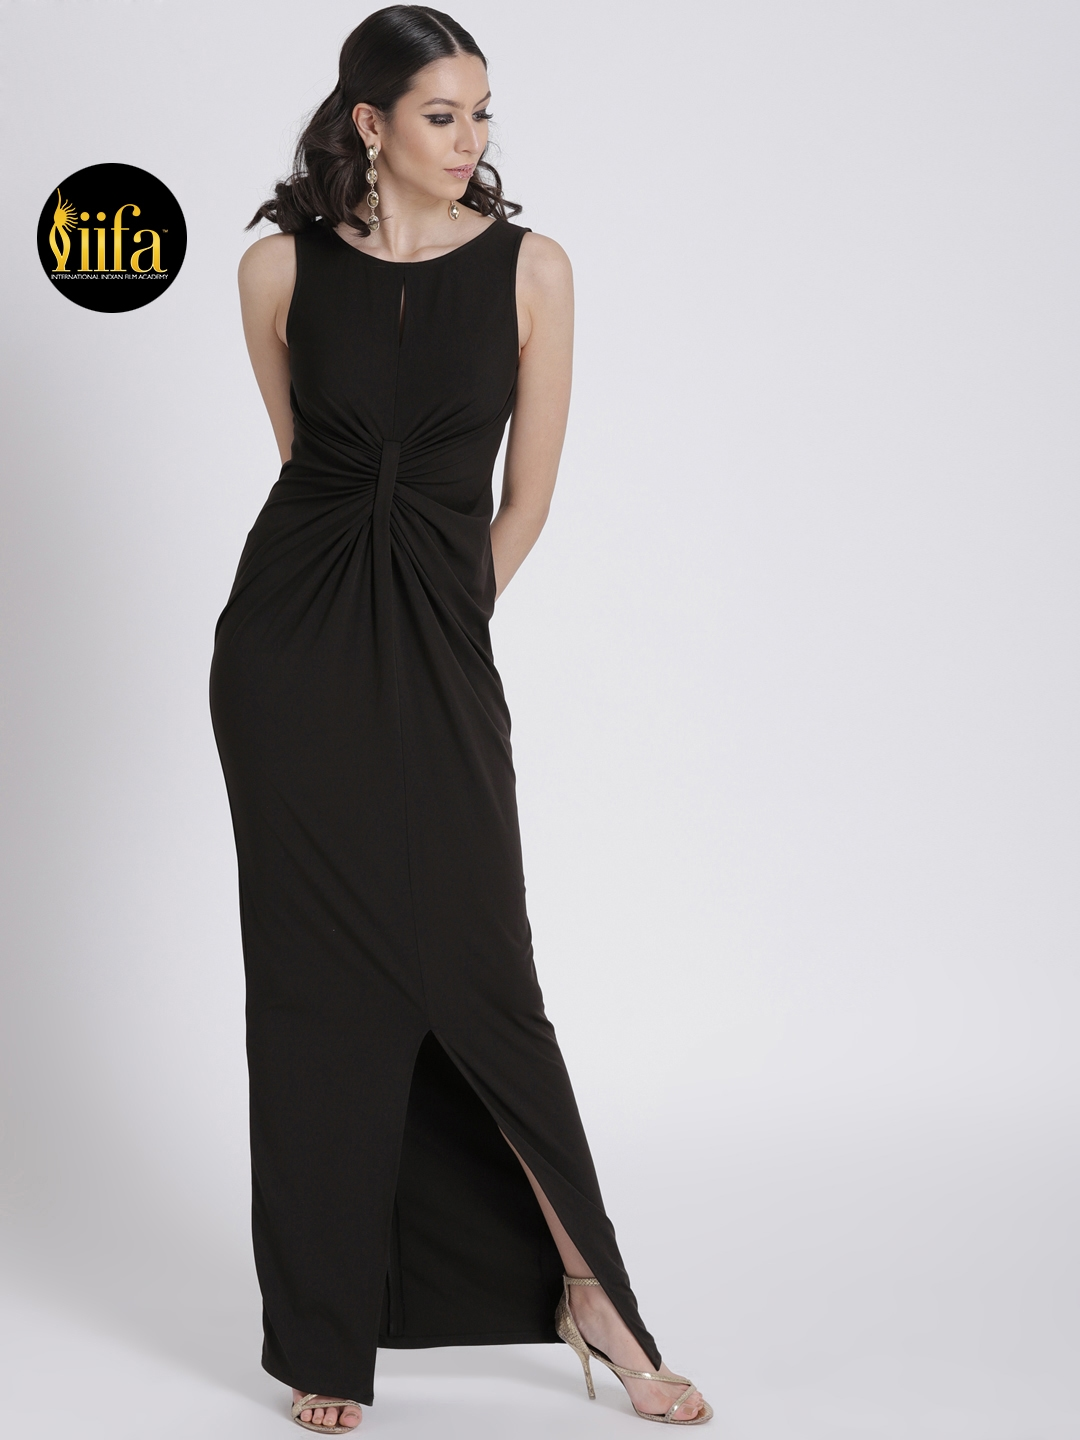 3a33f68f49 Buy FabAlley Women Black Solid Front Knotted Maxi Dress - Dresses ...